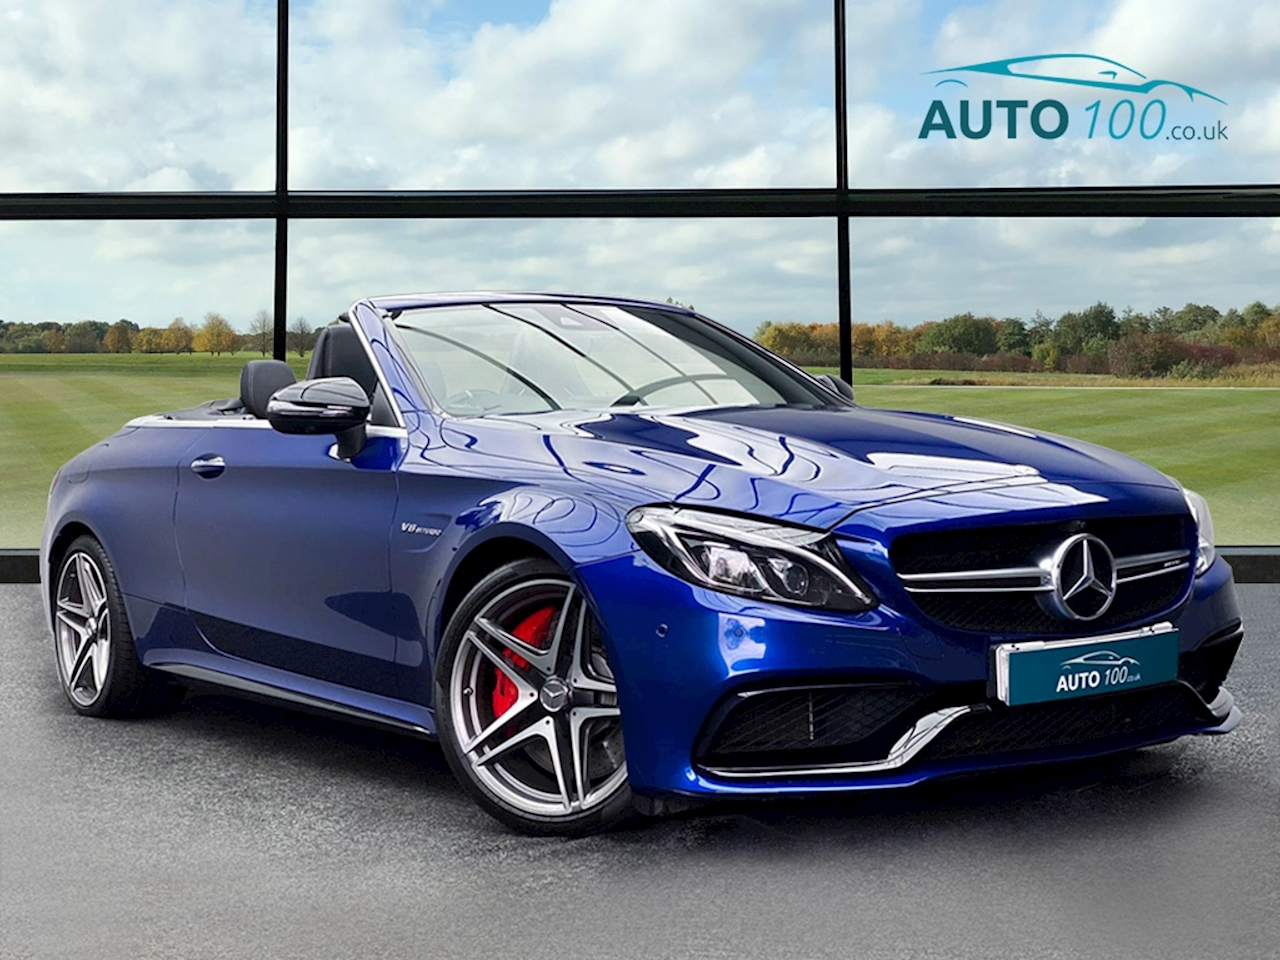 Mercedes-Benz C Class AMG S Cabriolet 4.0 SpdS MCT Petrol